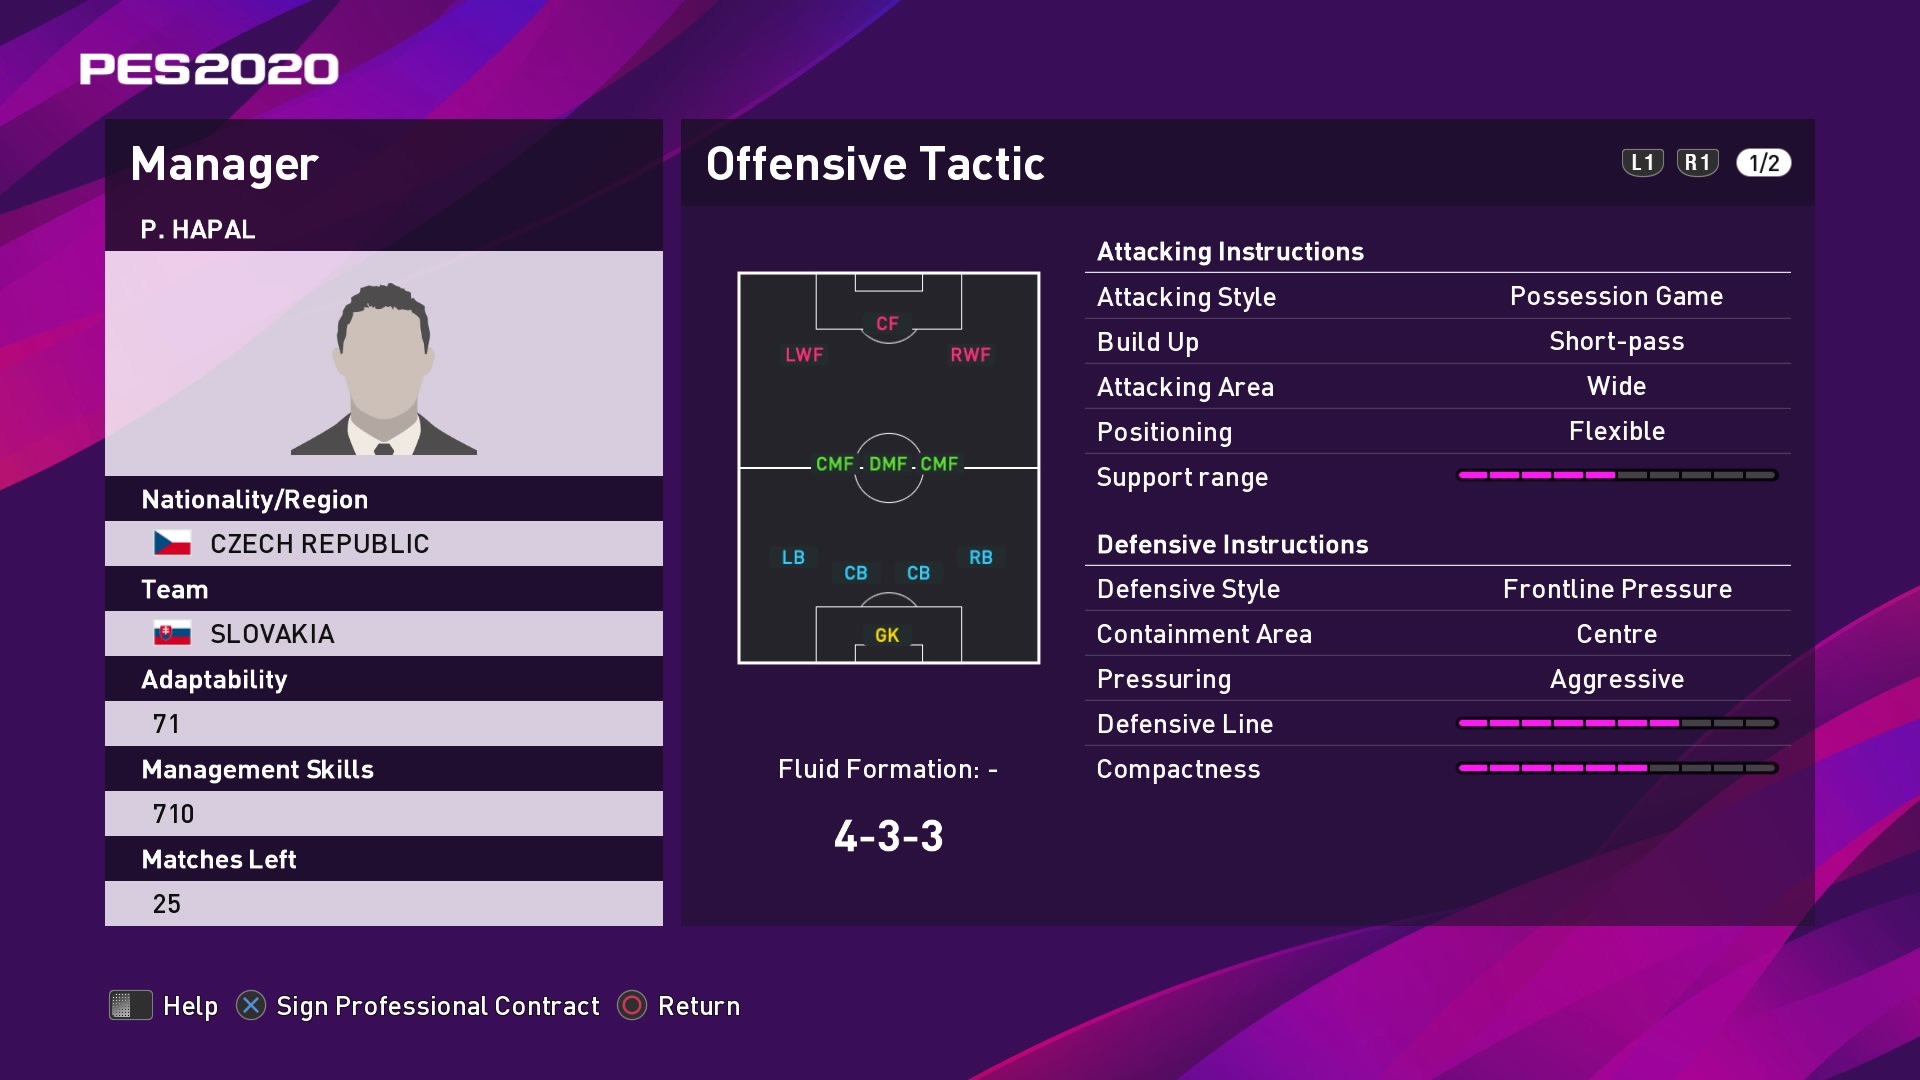 P. Hapal (Pavel Hapal) Offensive Tactic in PES 2020 myClub